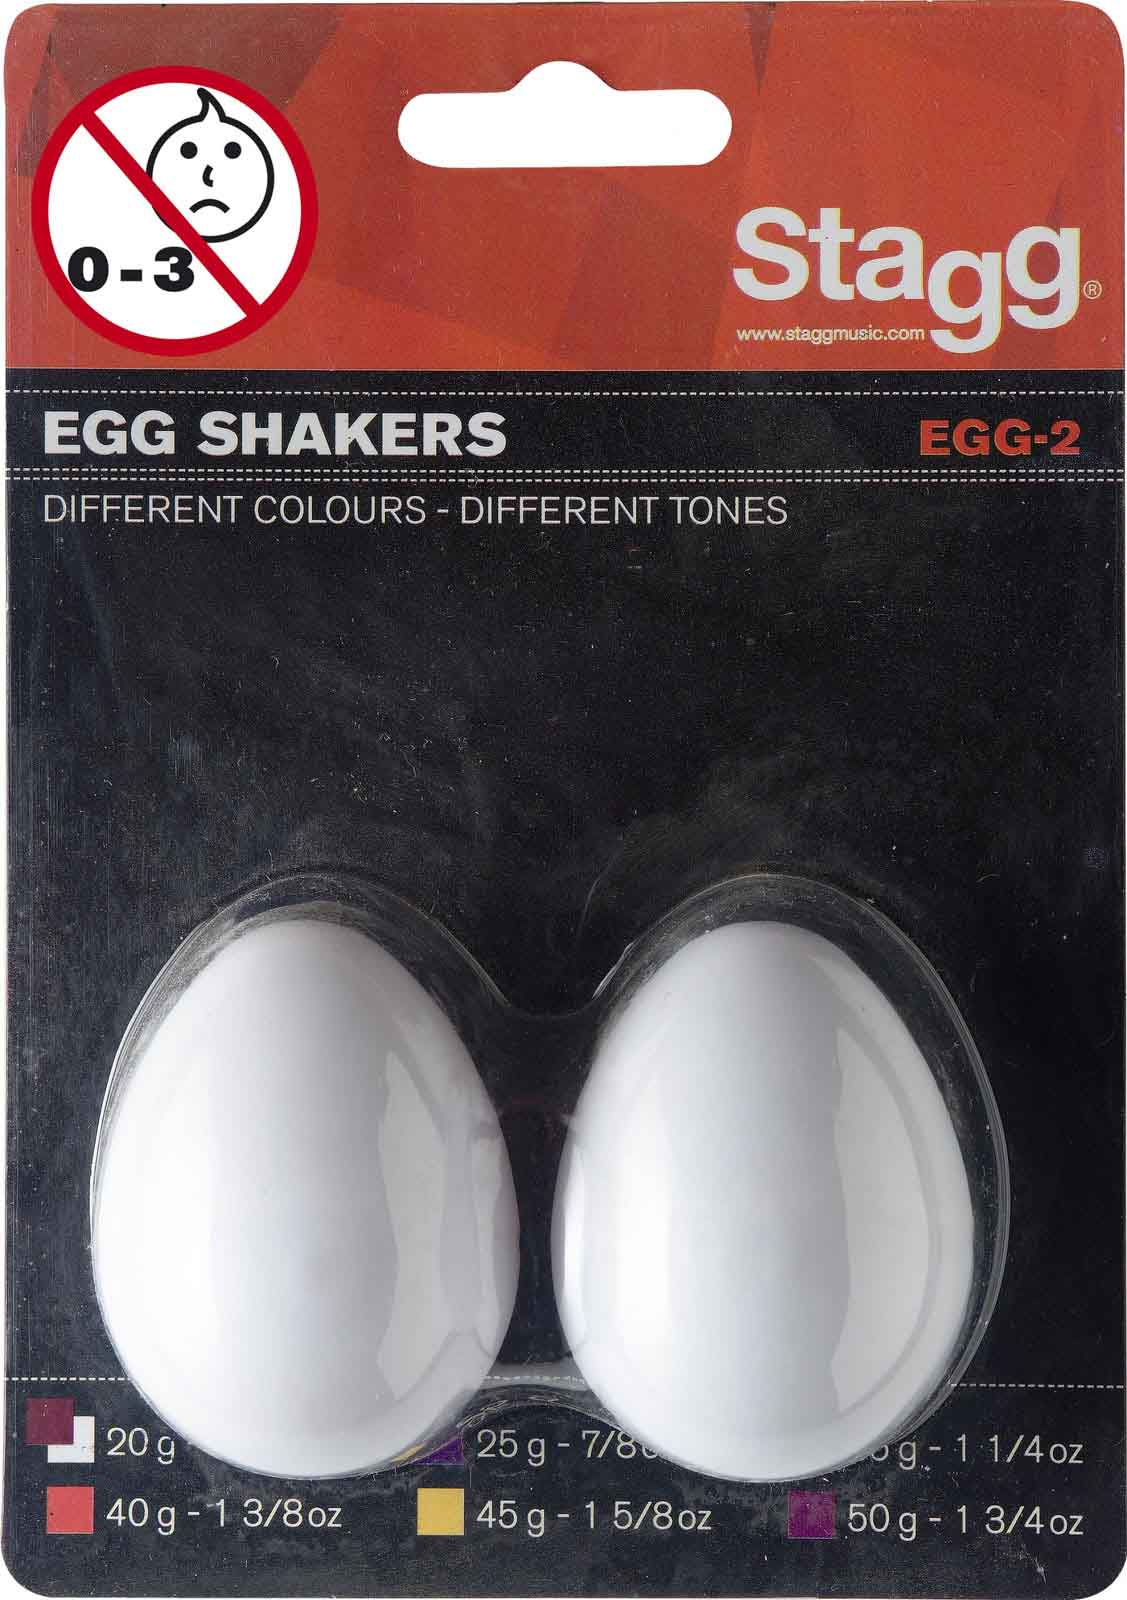 Stagg Paire Shaker Oeuf Plastique Egg-2 Wh